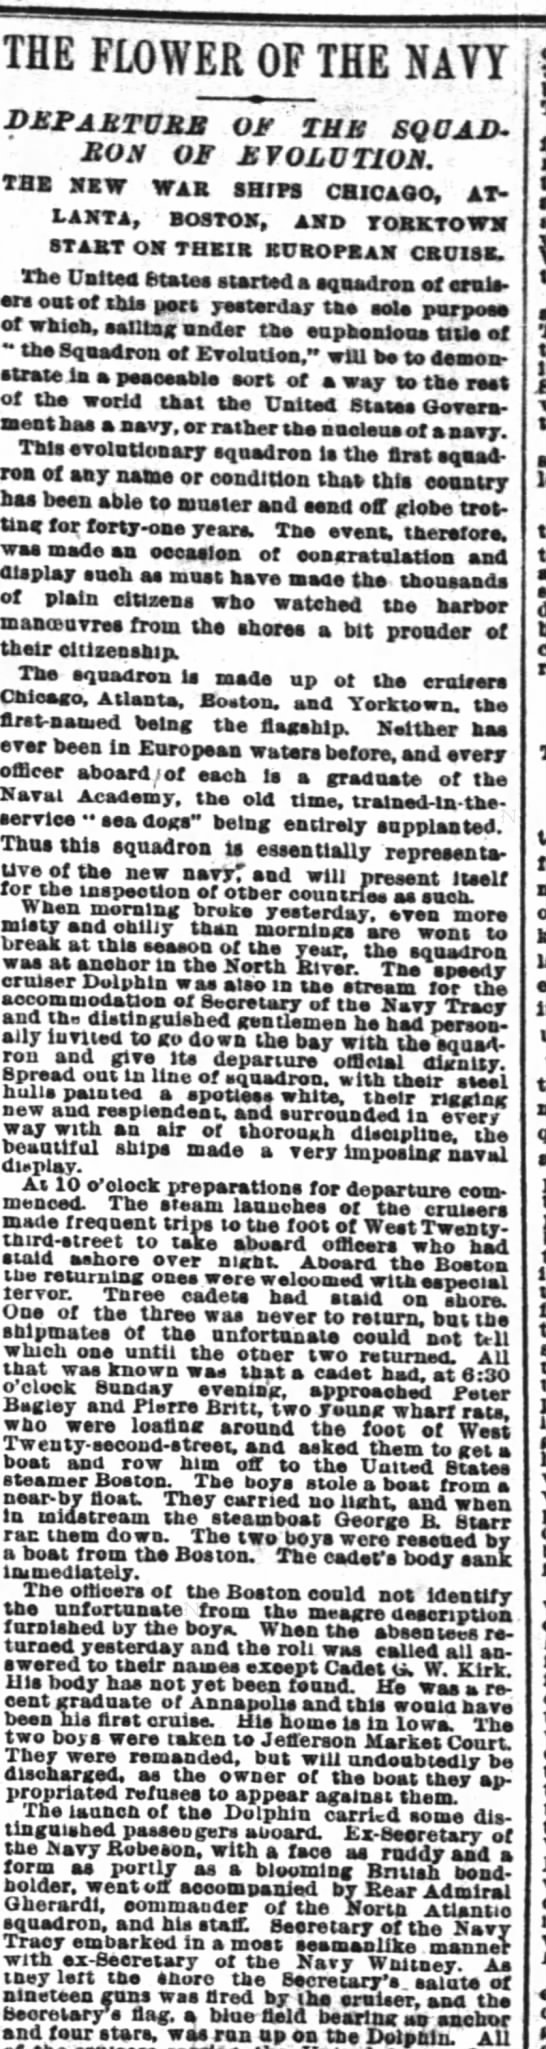 NY Times, 19 Nov 1889.  The new squadron of ABCD ships goes to Europe to show off -